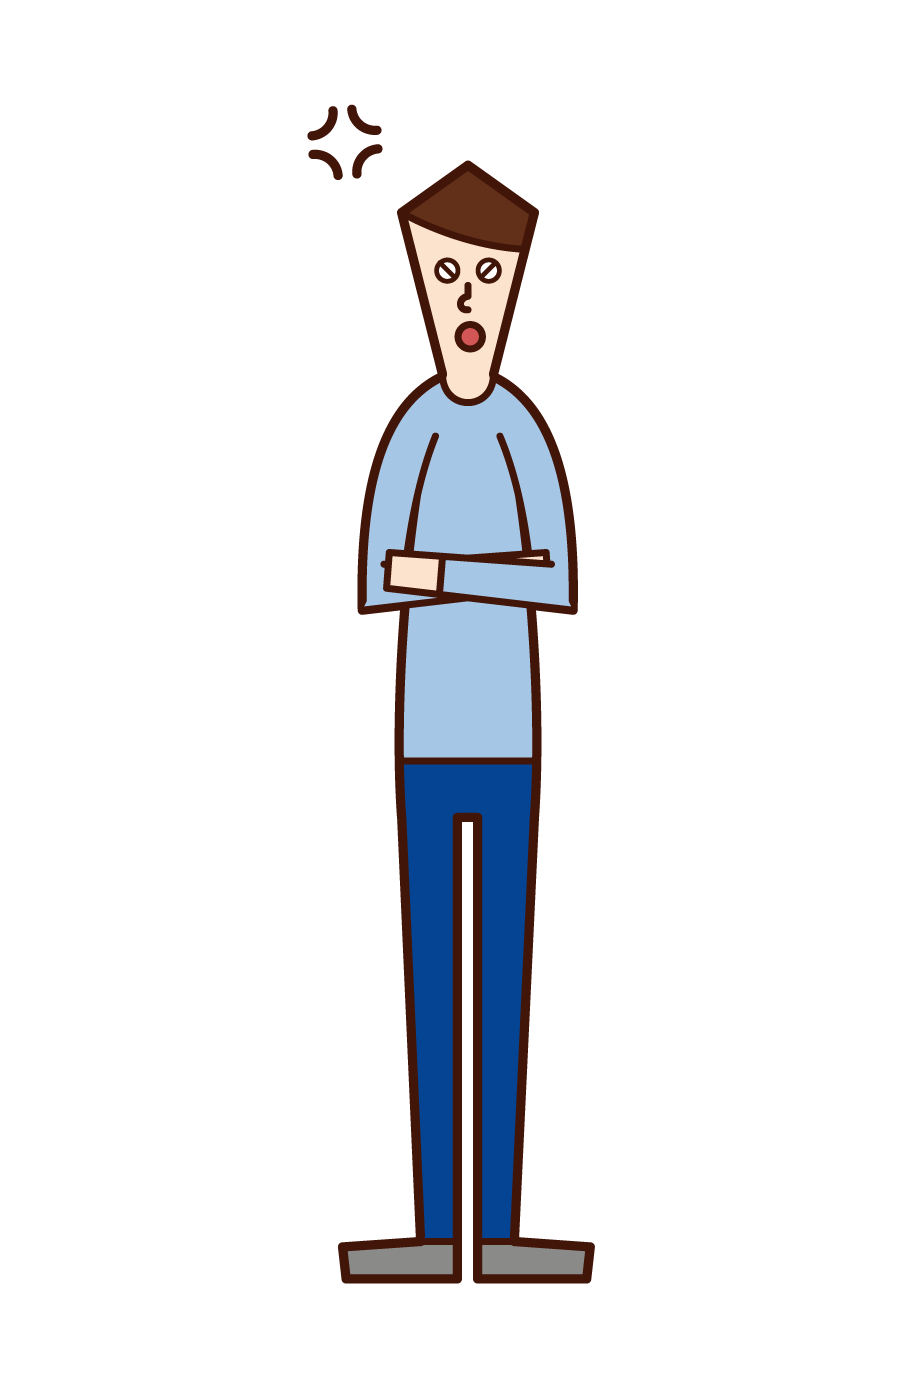 Illustration of a man arm in his arm and gets angry